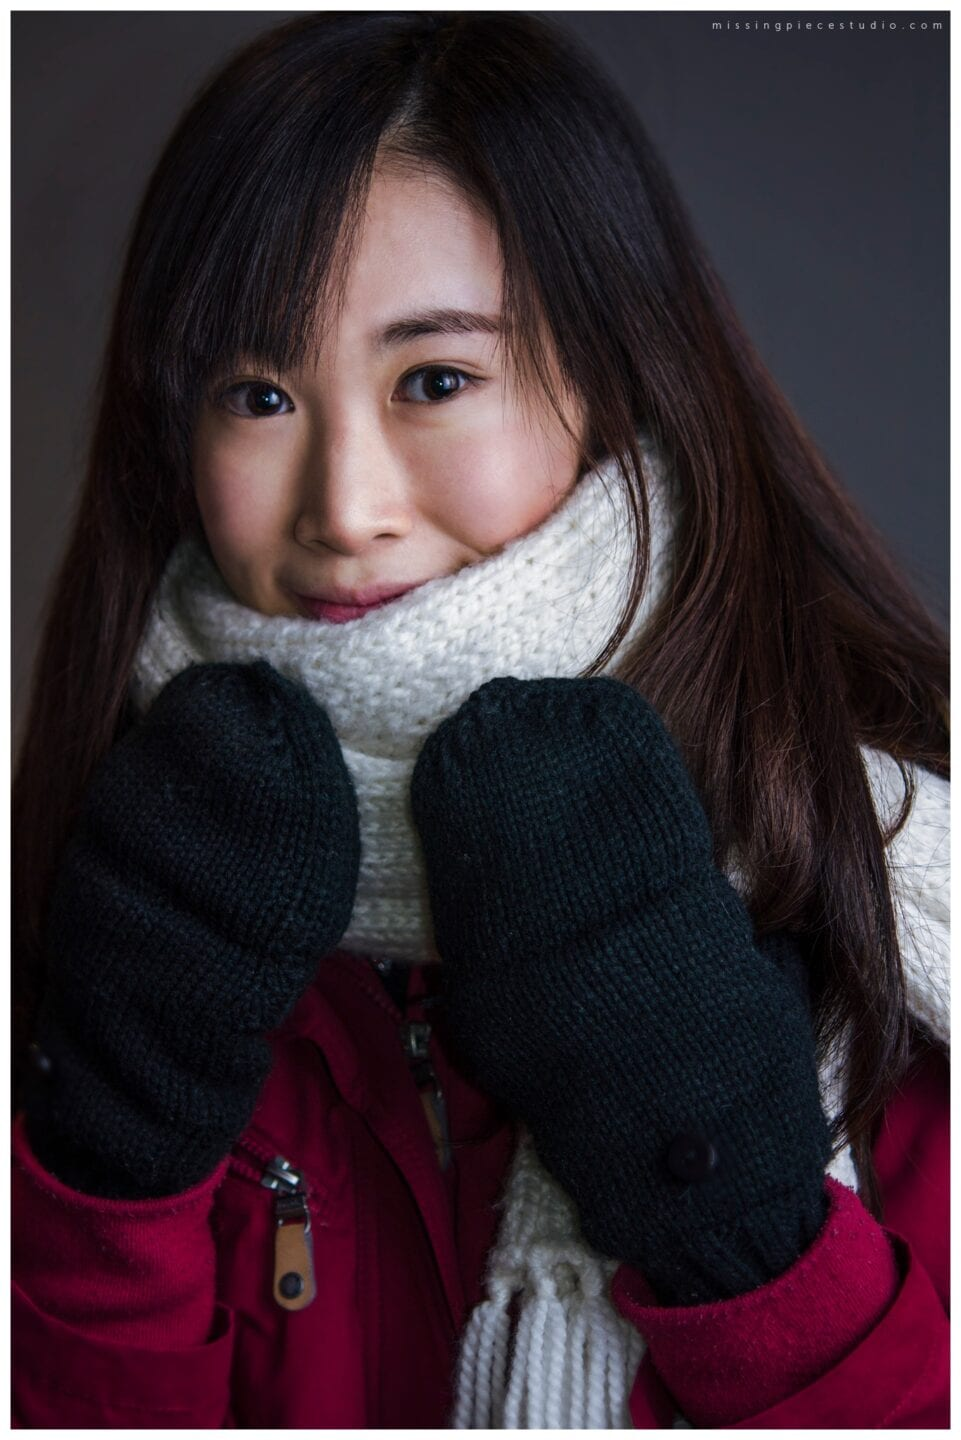 Girl with scarf in red jacket and a mitten